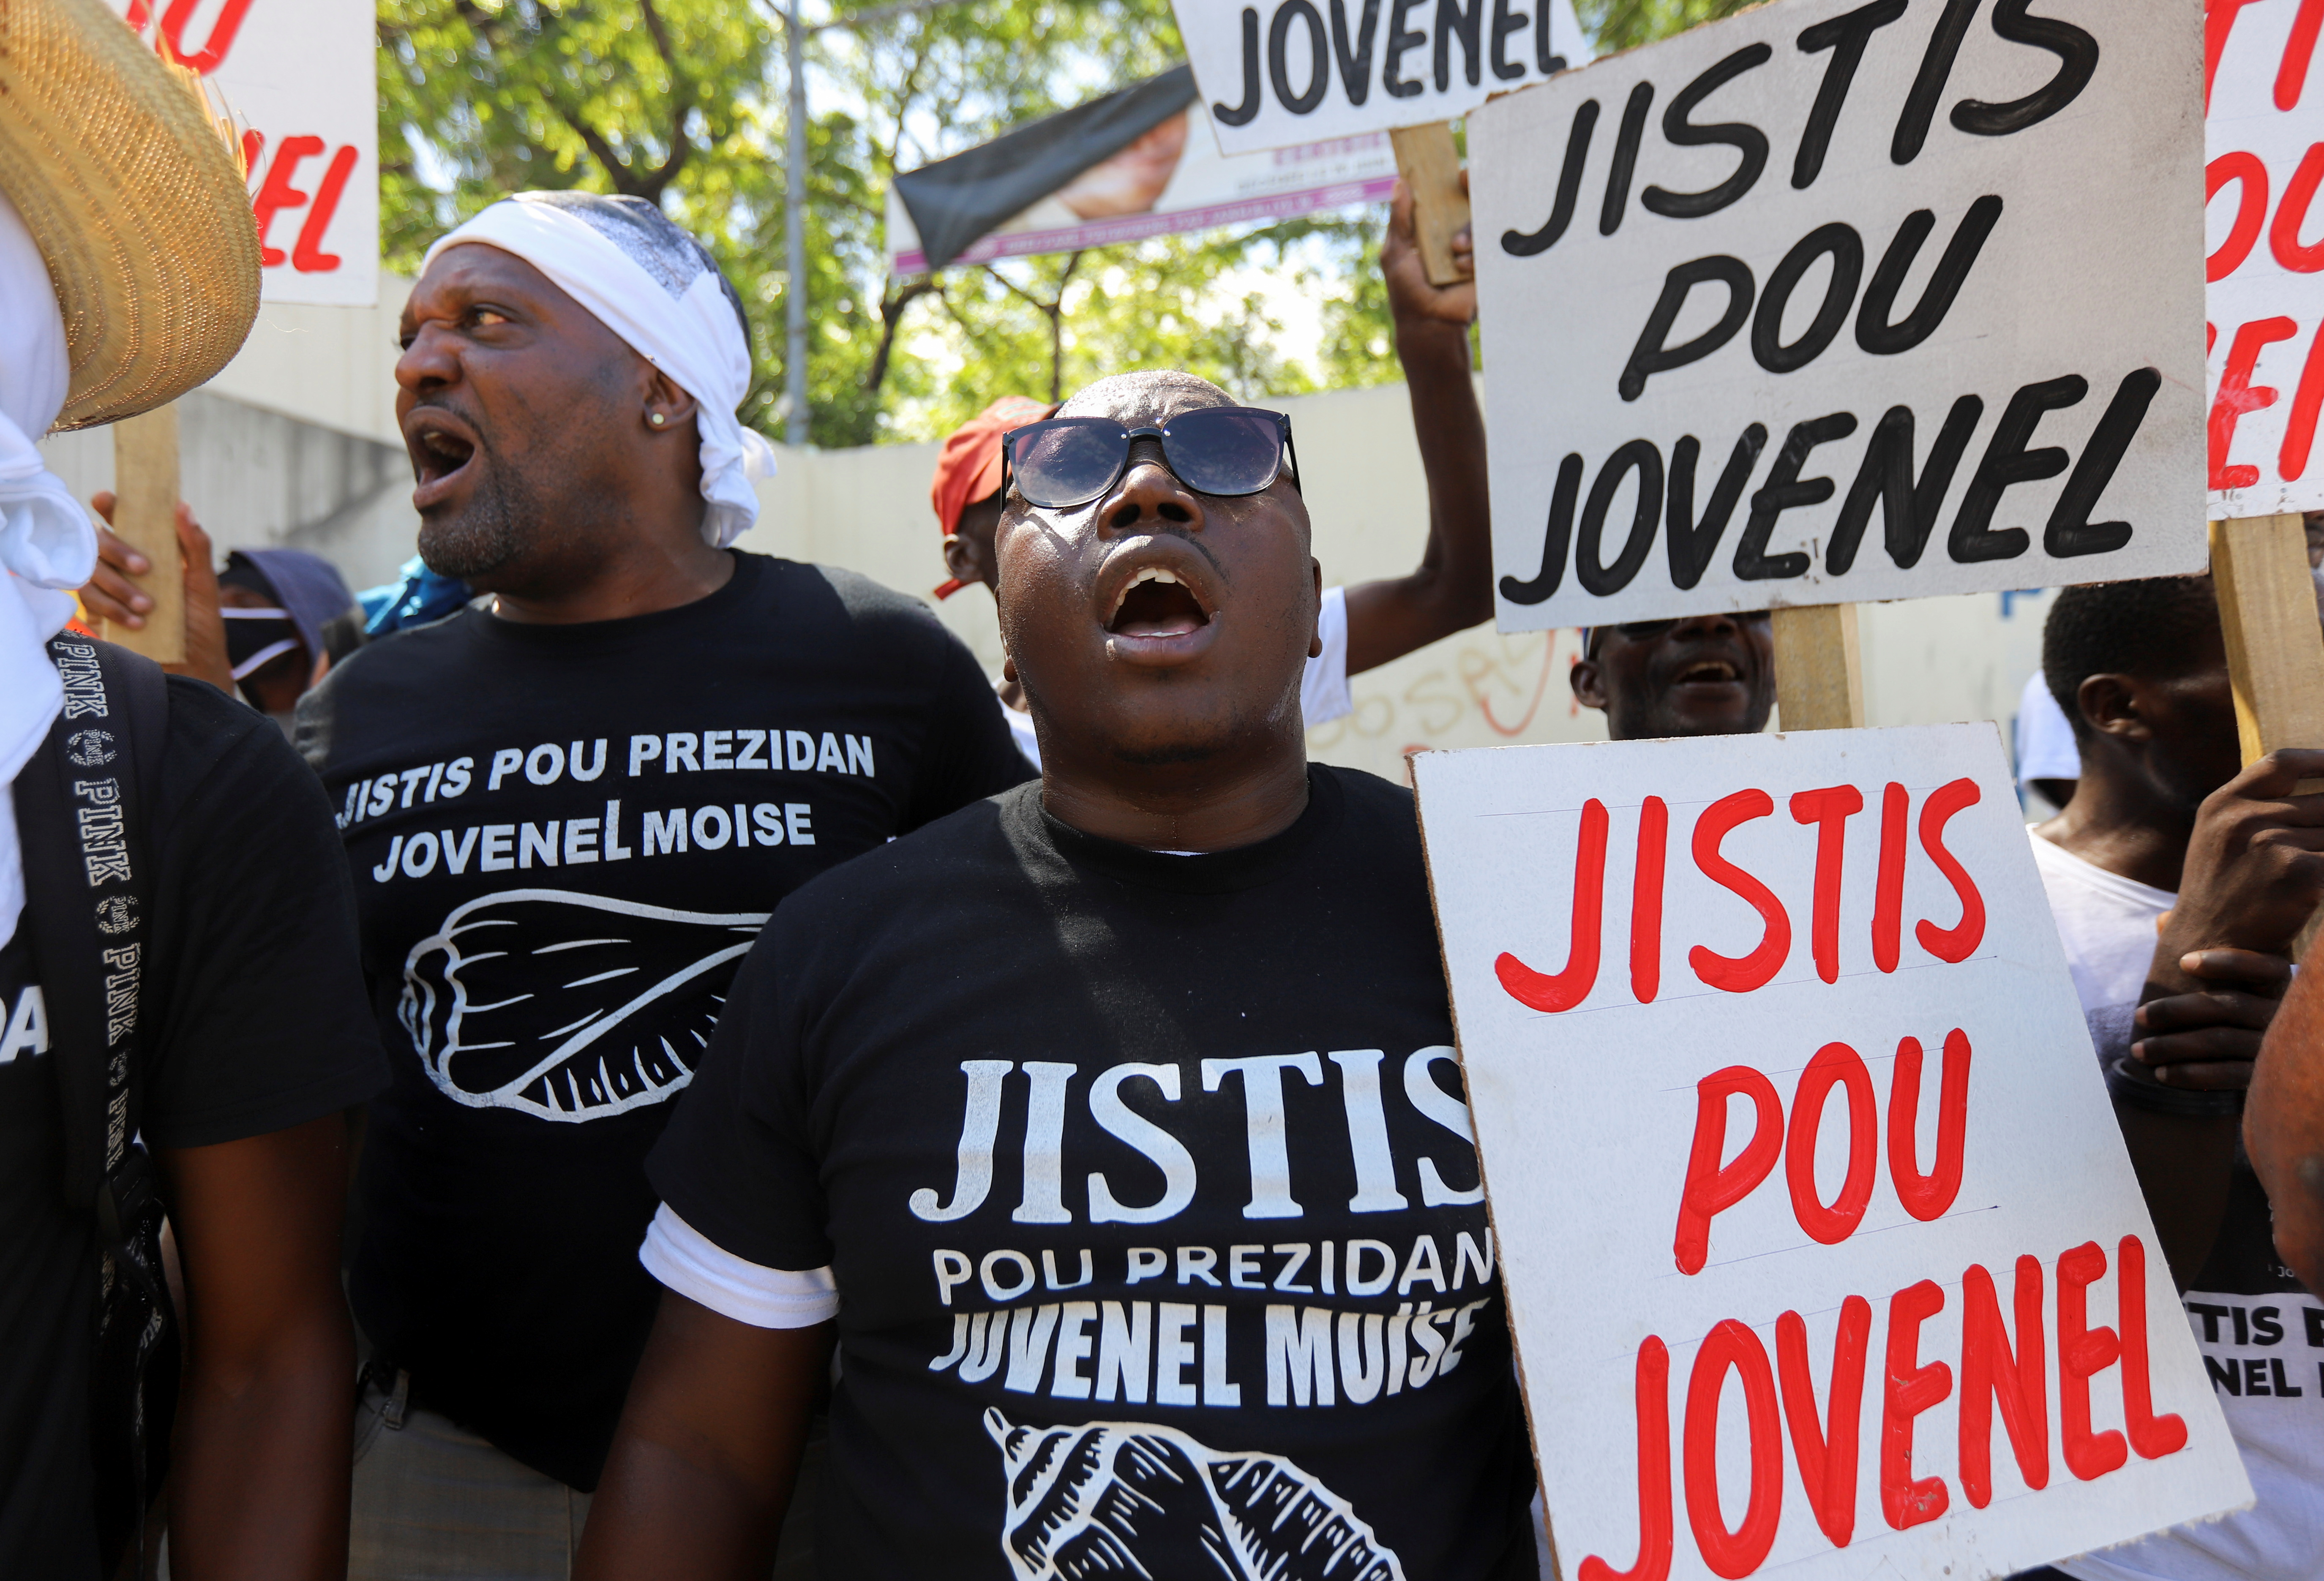 """Demonstrators hold signs reading """"Justice for Jovenel"""" outside a judicial hearing into the assassination of President Jovenel Moise attended by former first lady Martine Moise, in Port-au-Prince, Haiti October 6, 2021. REUTERS/Ralph Tedy Erol"""